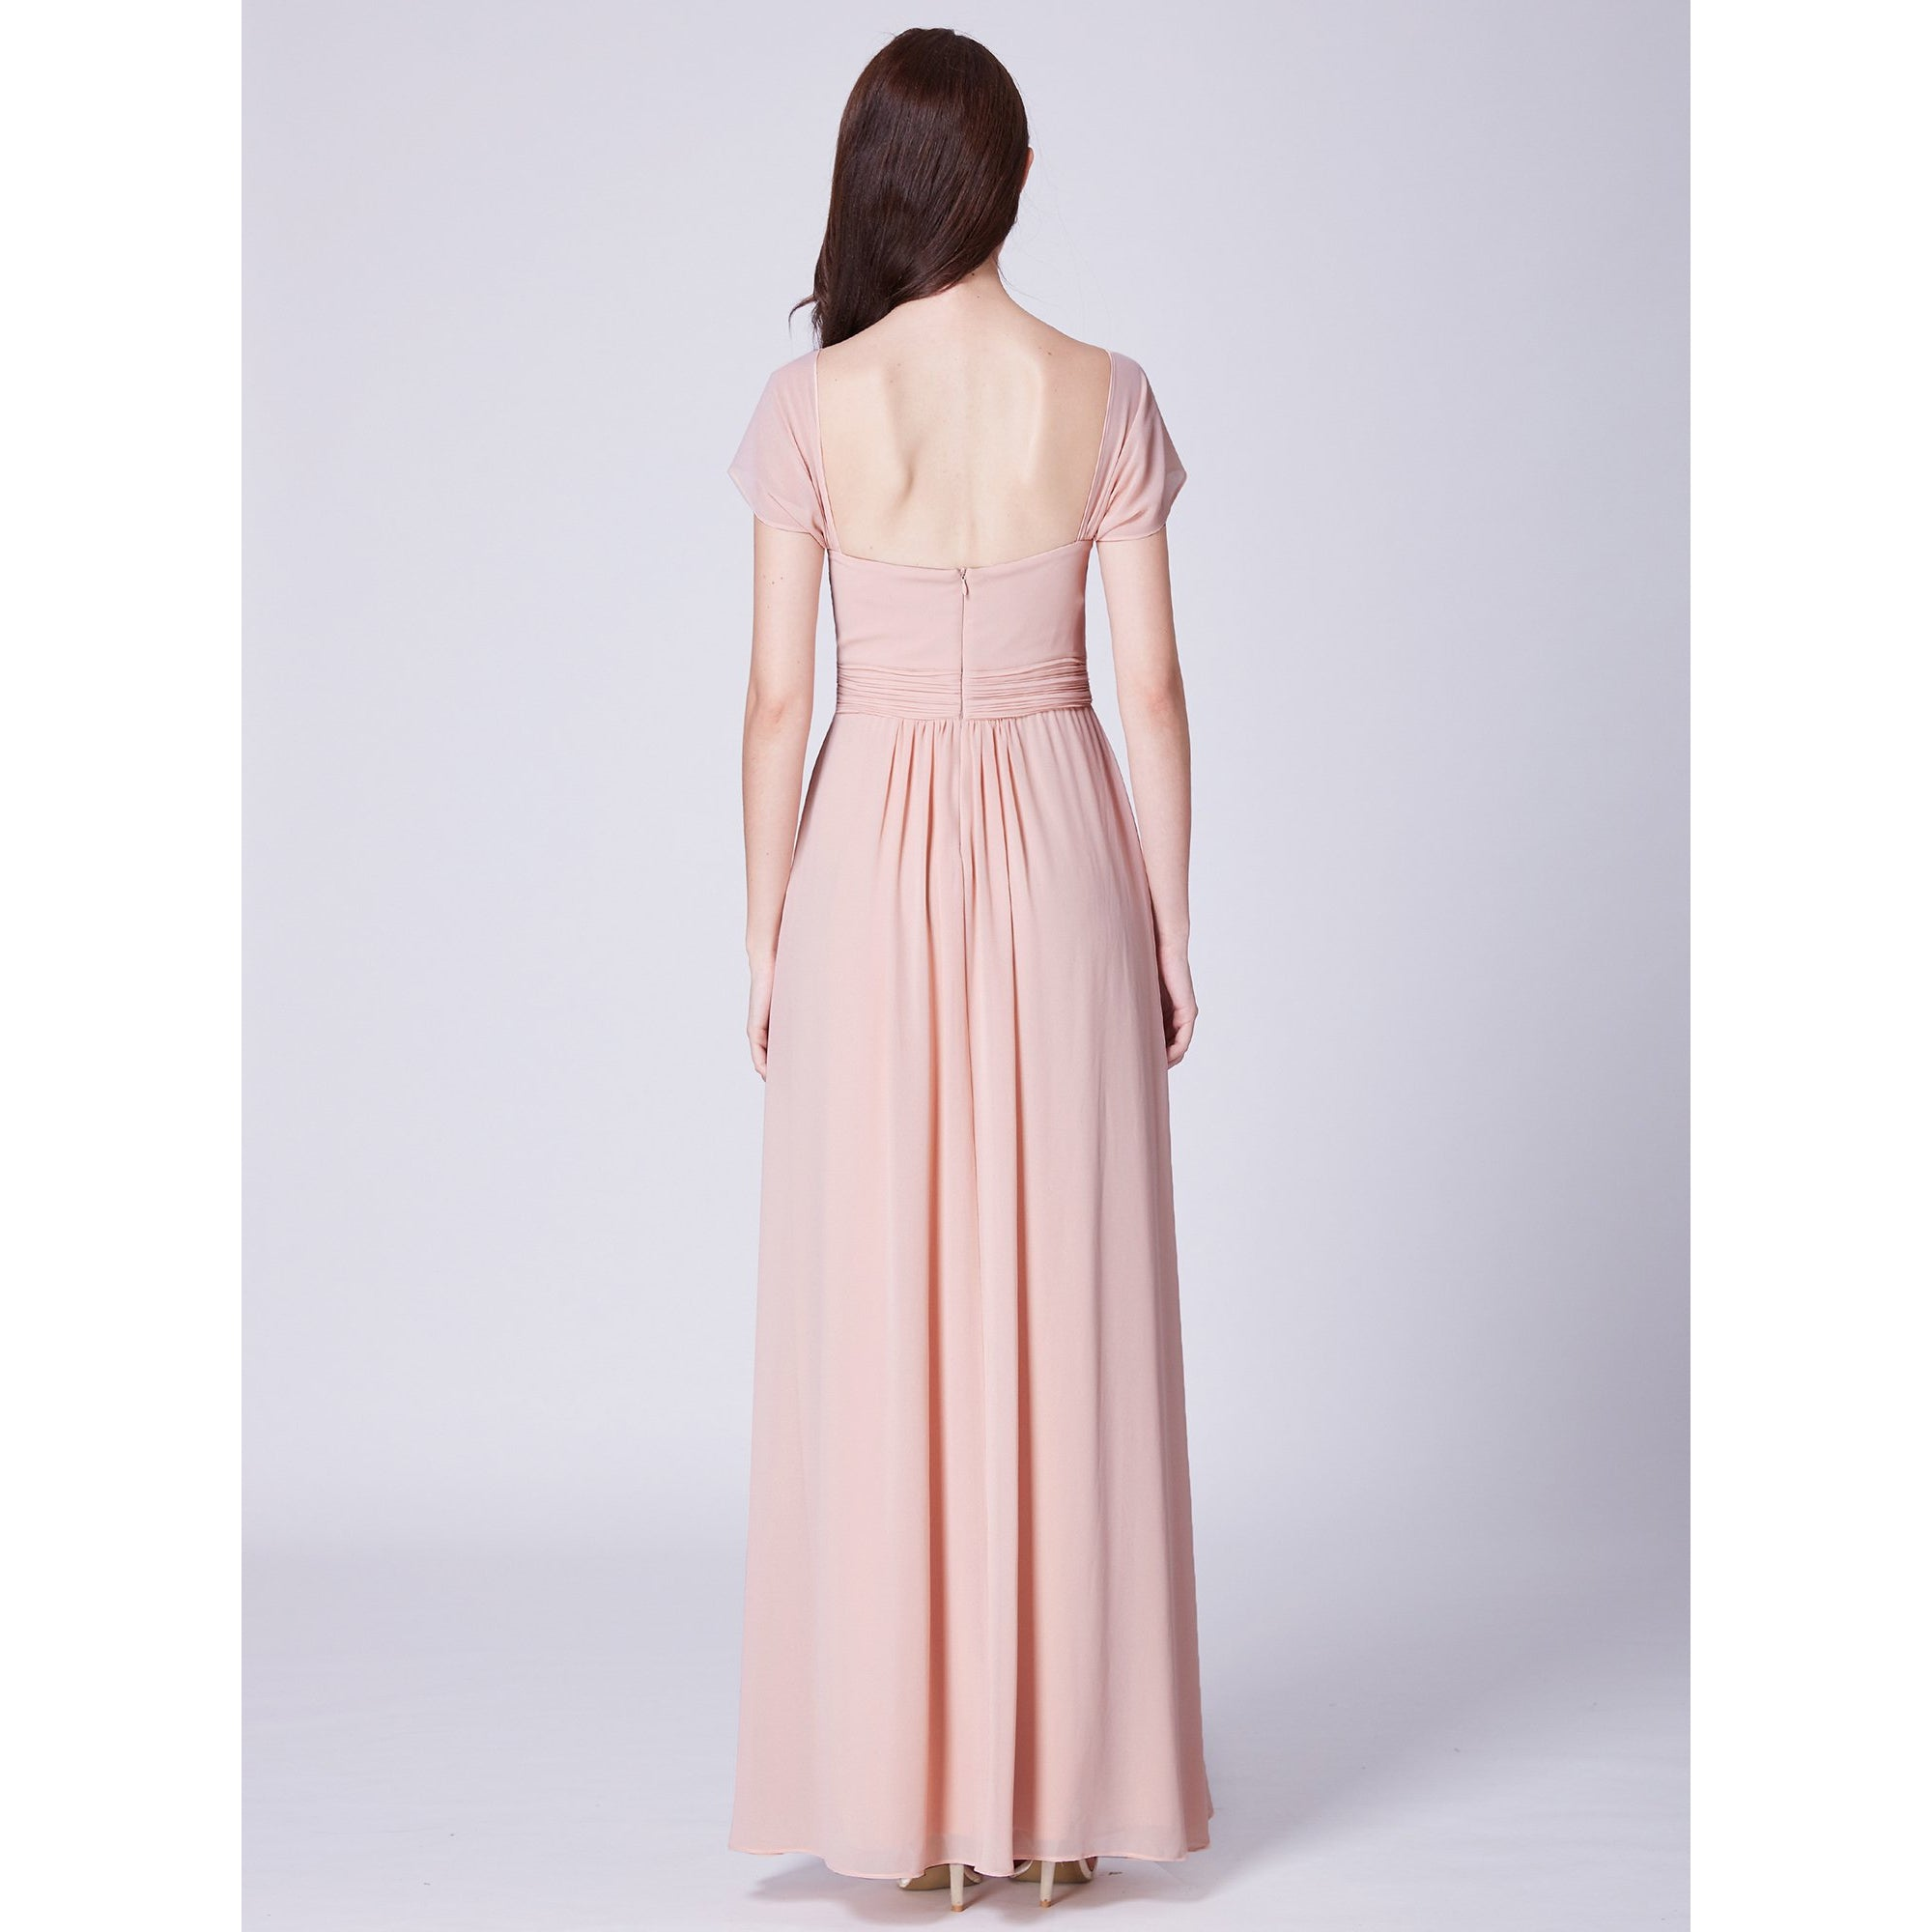 Katara lovely chiffon bridesmaid dress in blush s12-Bay Bridesmaid